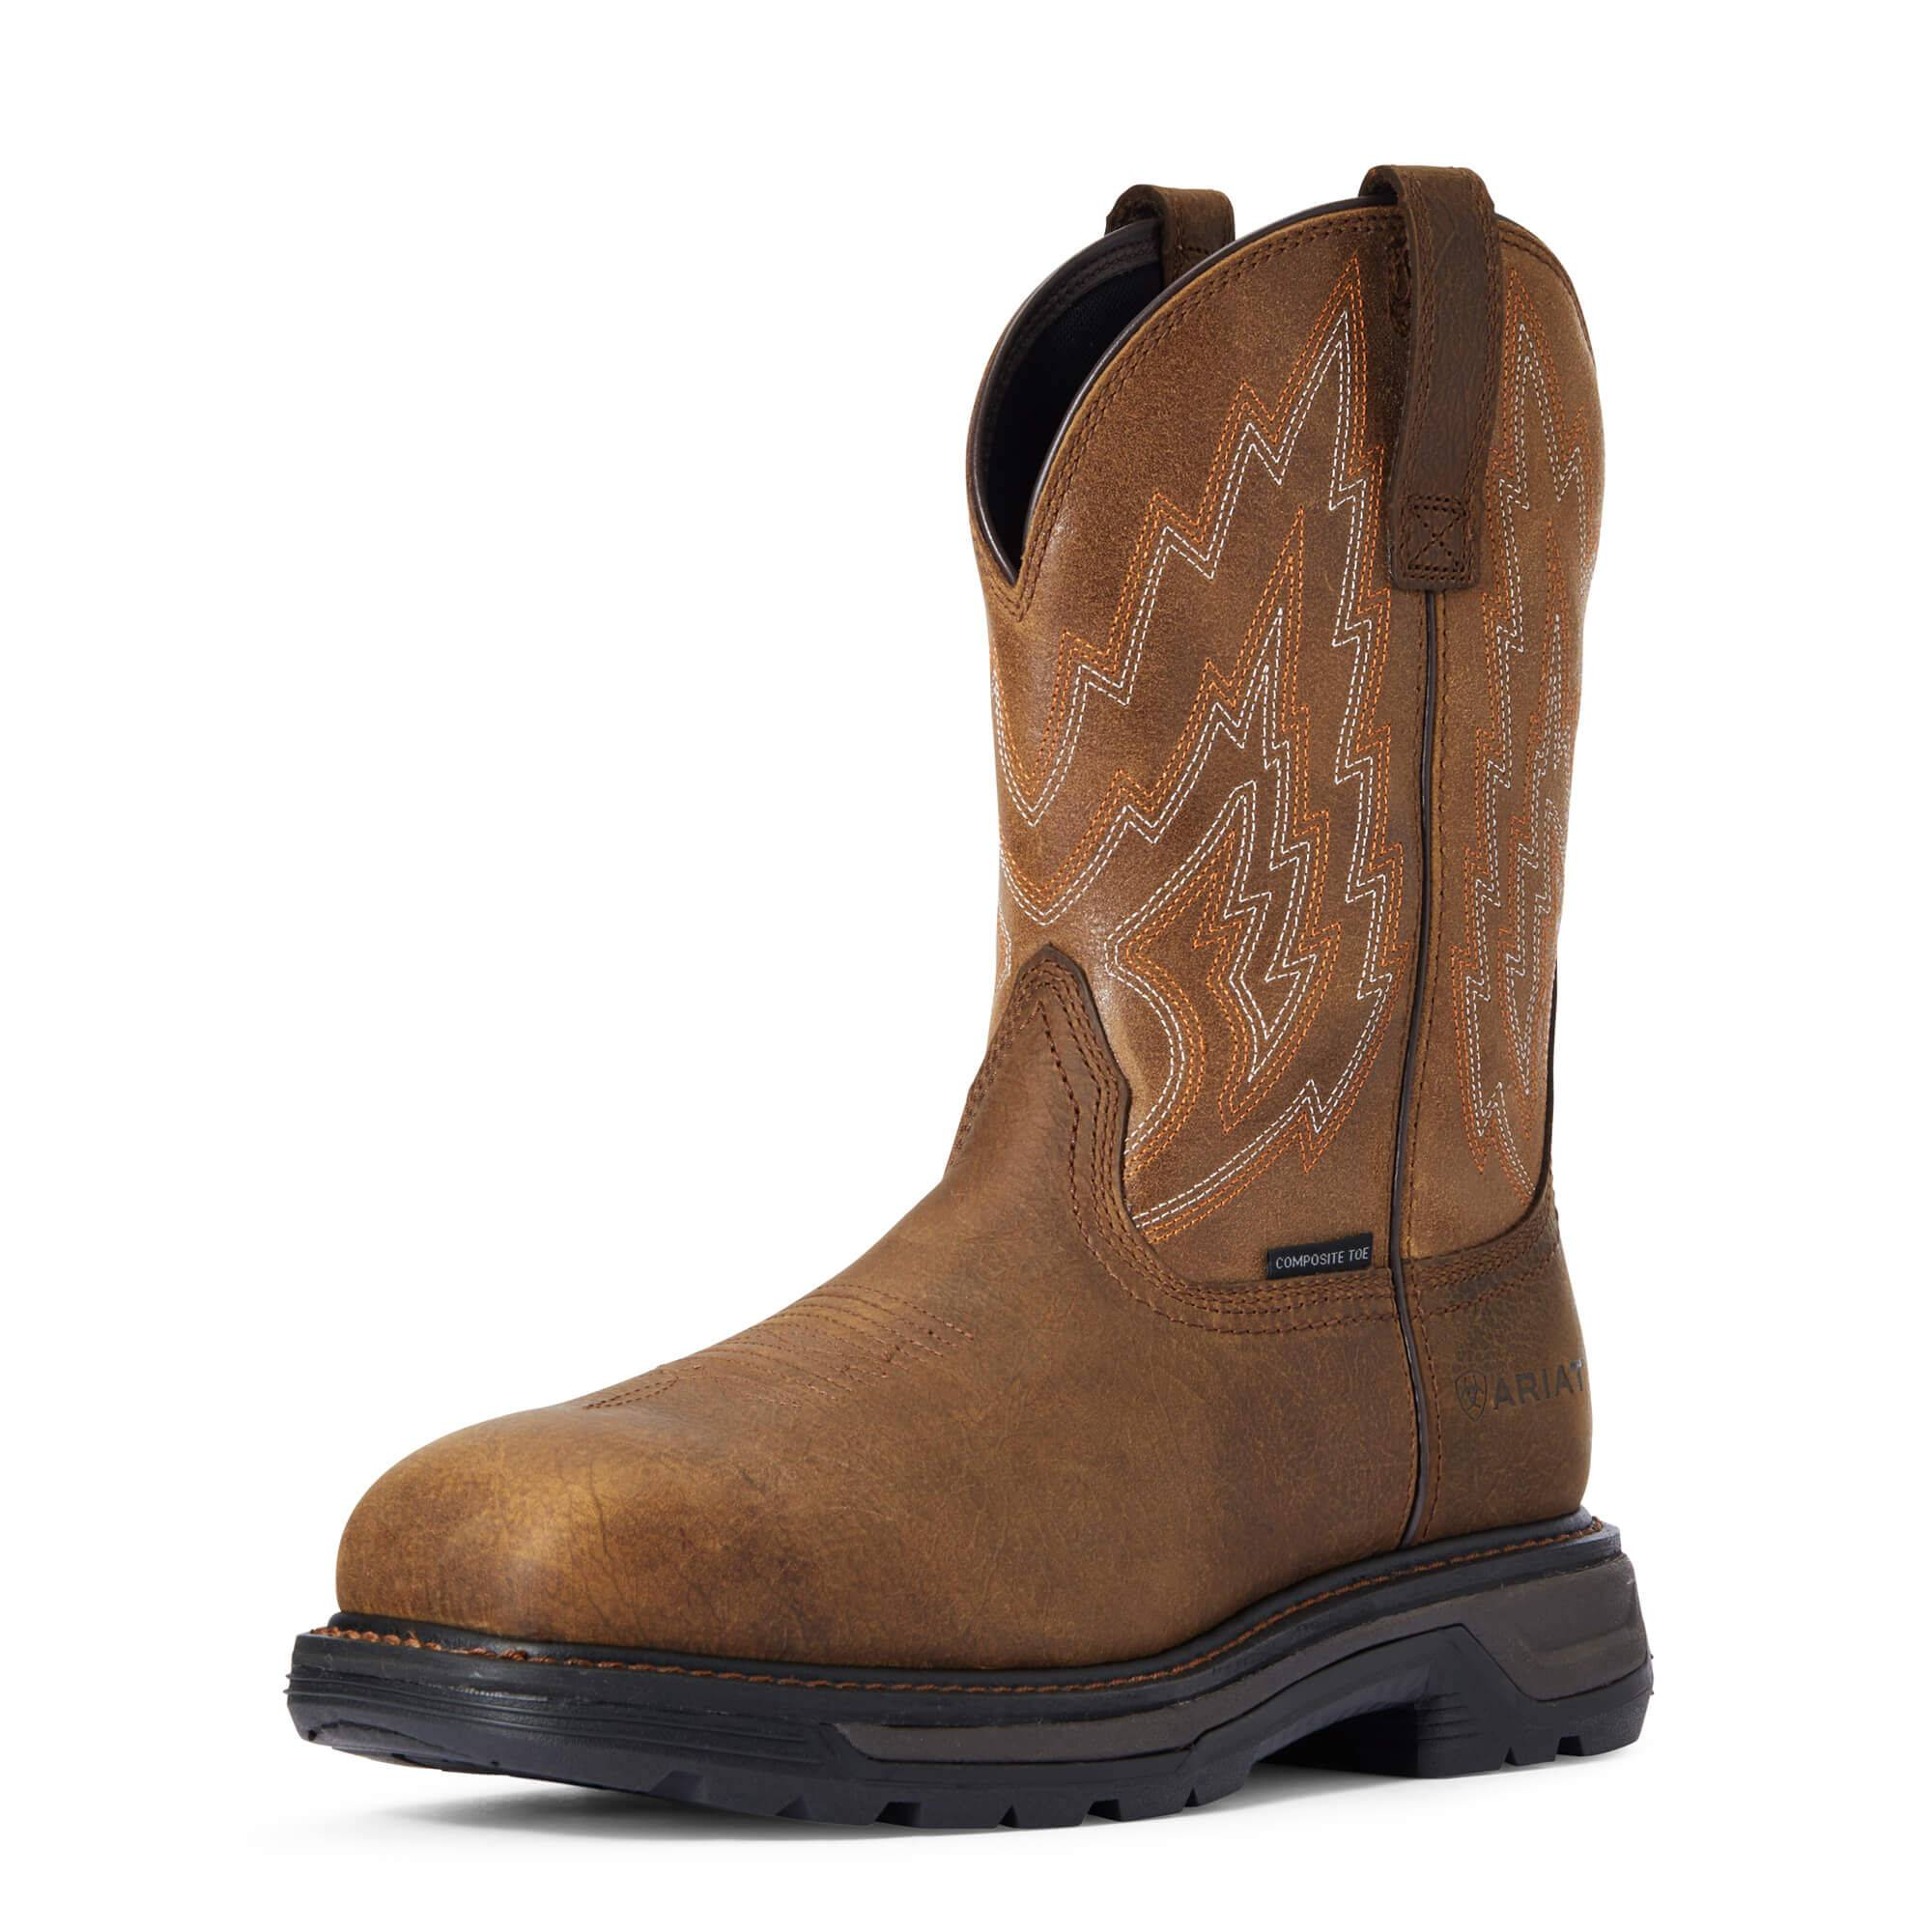 Ariat Men's Big Rig Composite Toe Work Boots in Rye Brown Leather, Size 12 EE / Wide by Ariat